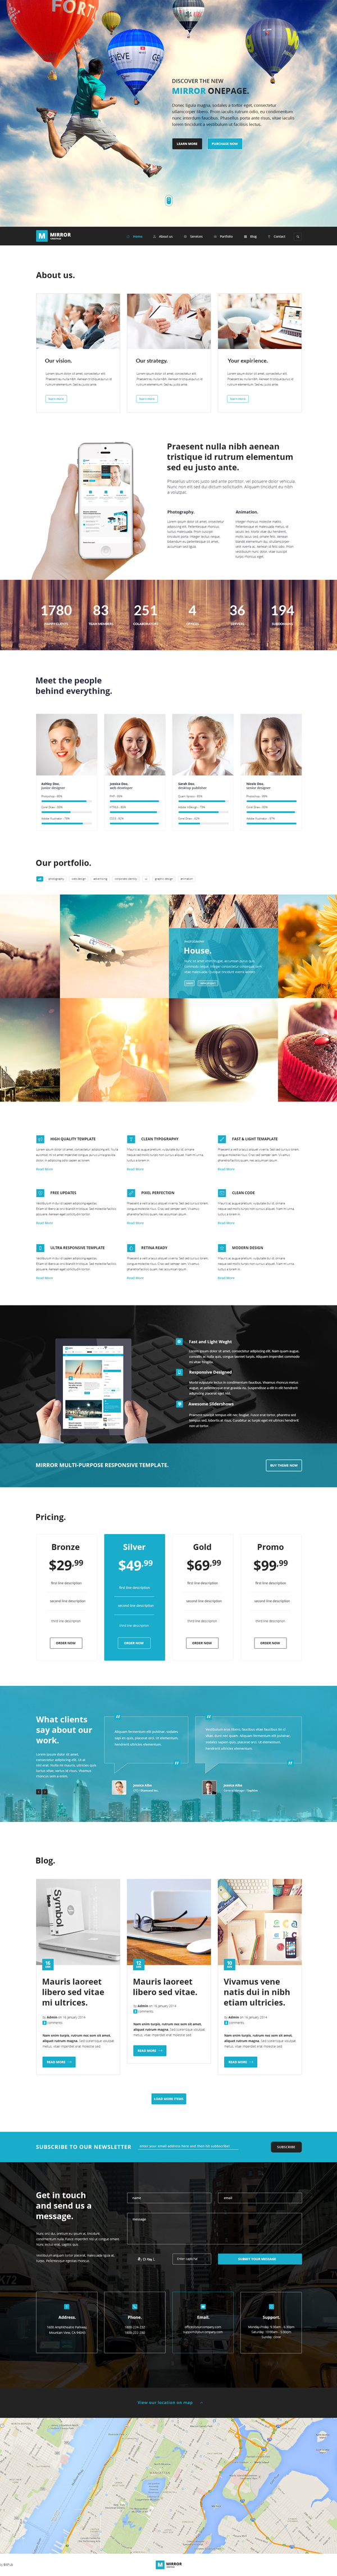 Mirror - Responsive HTML5 Business Kit